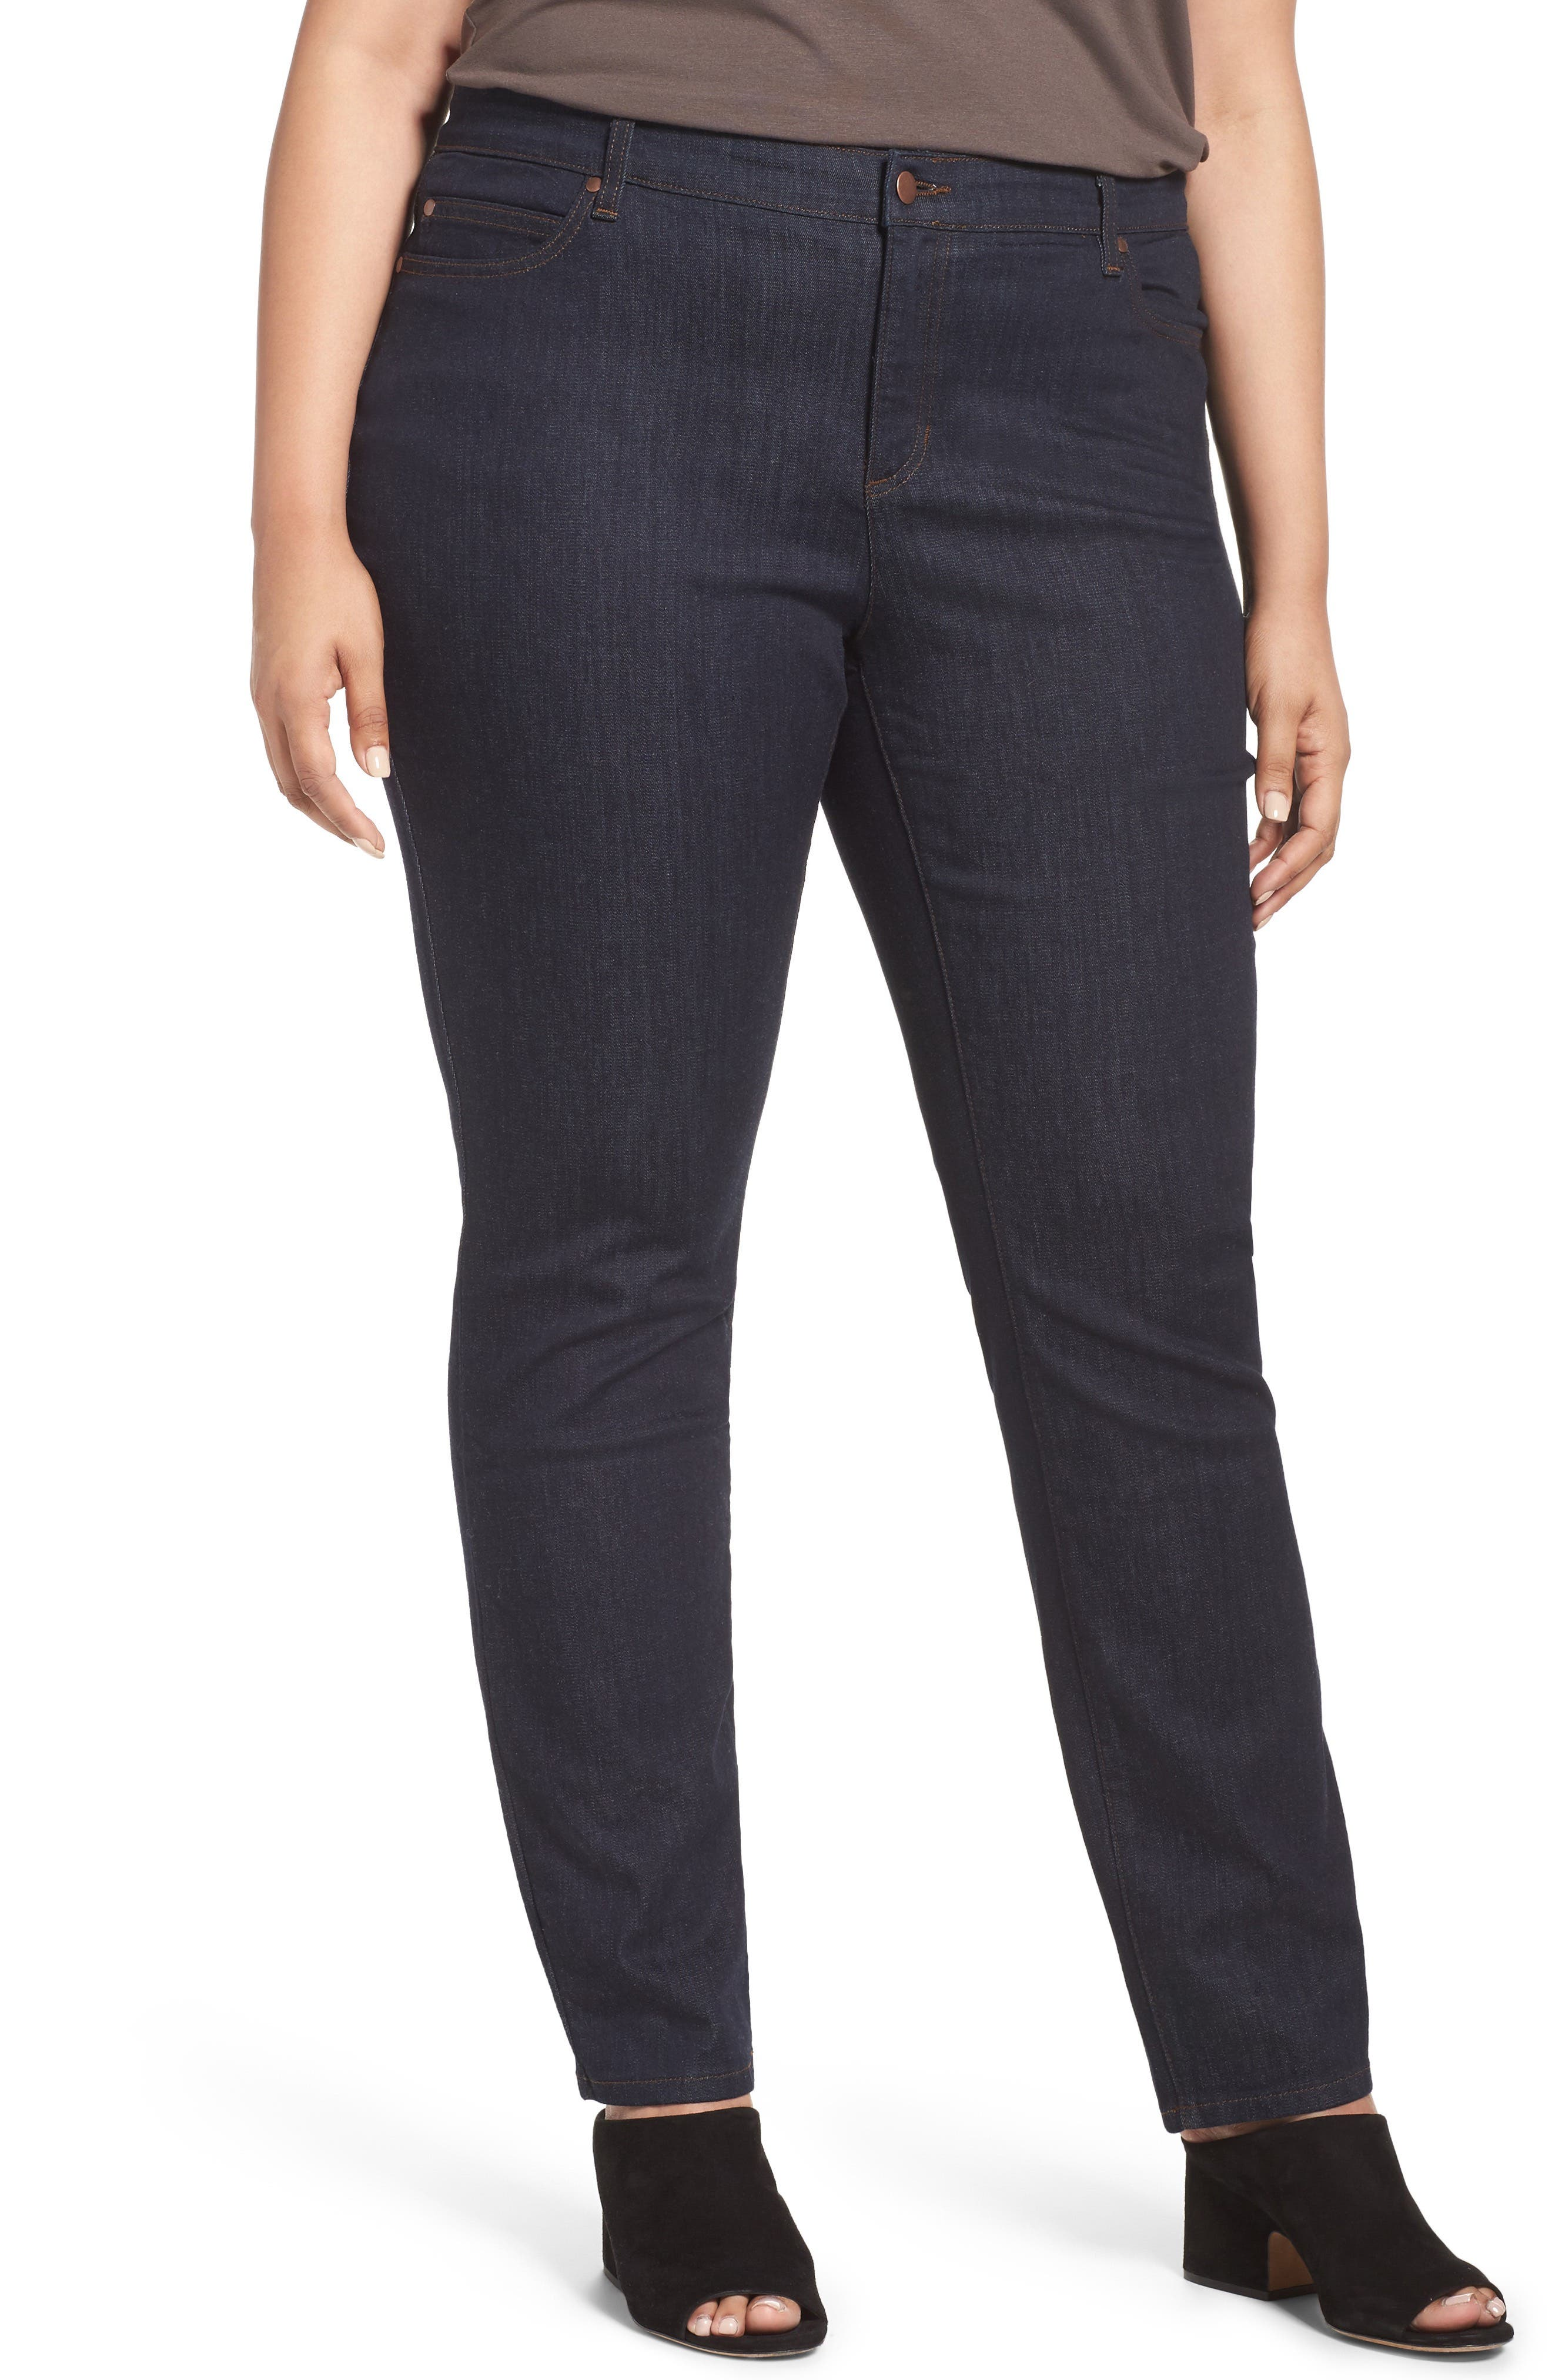 Organic Cotton Stretch Skinny Jeans,                             Main thumbnail 1, color,                             402